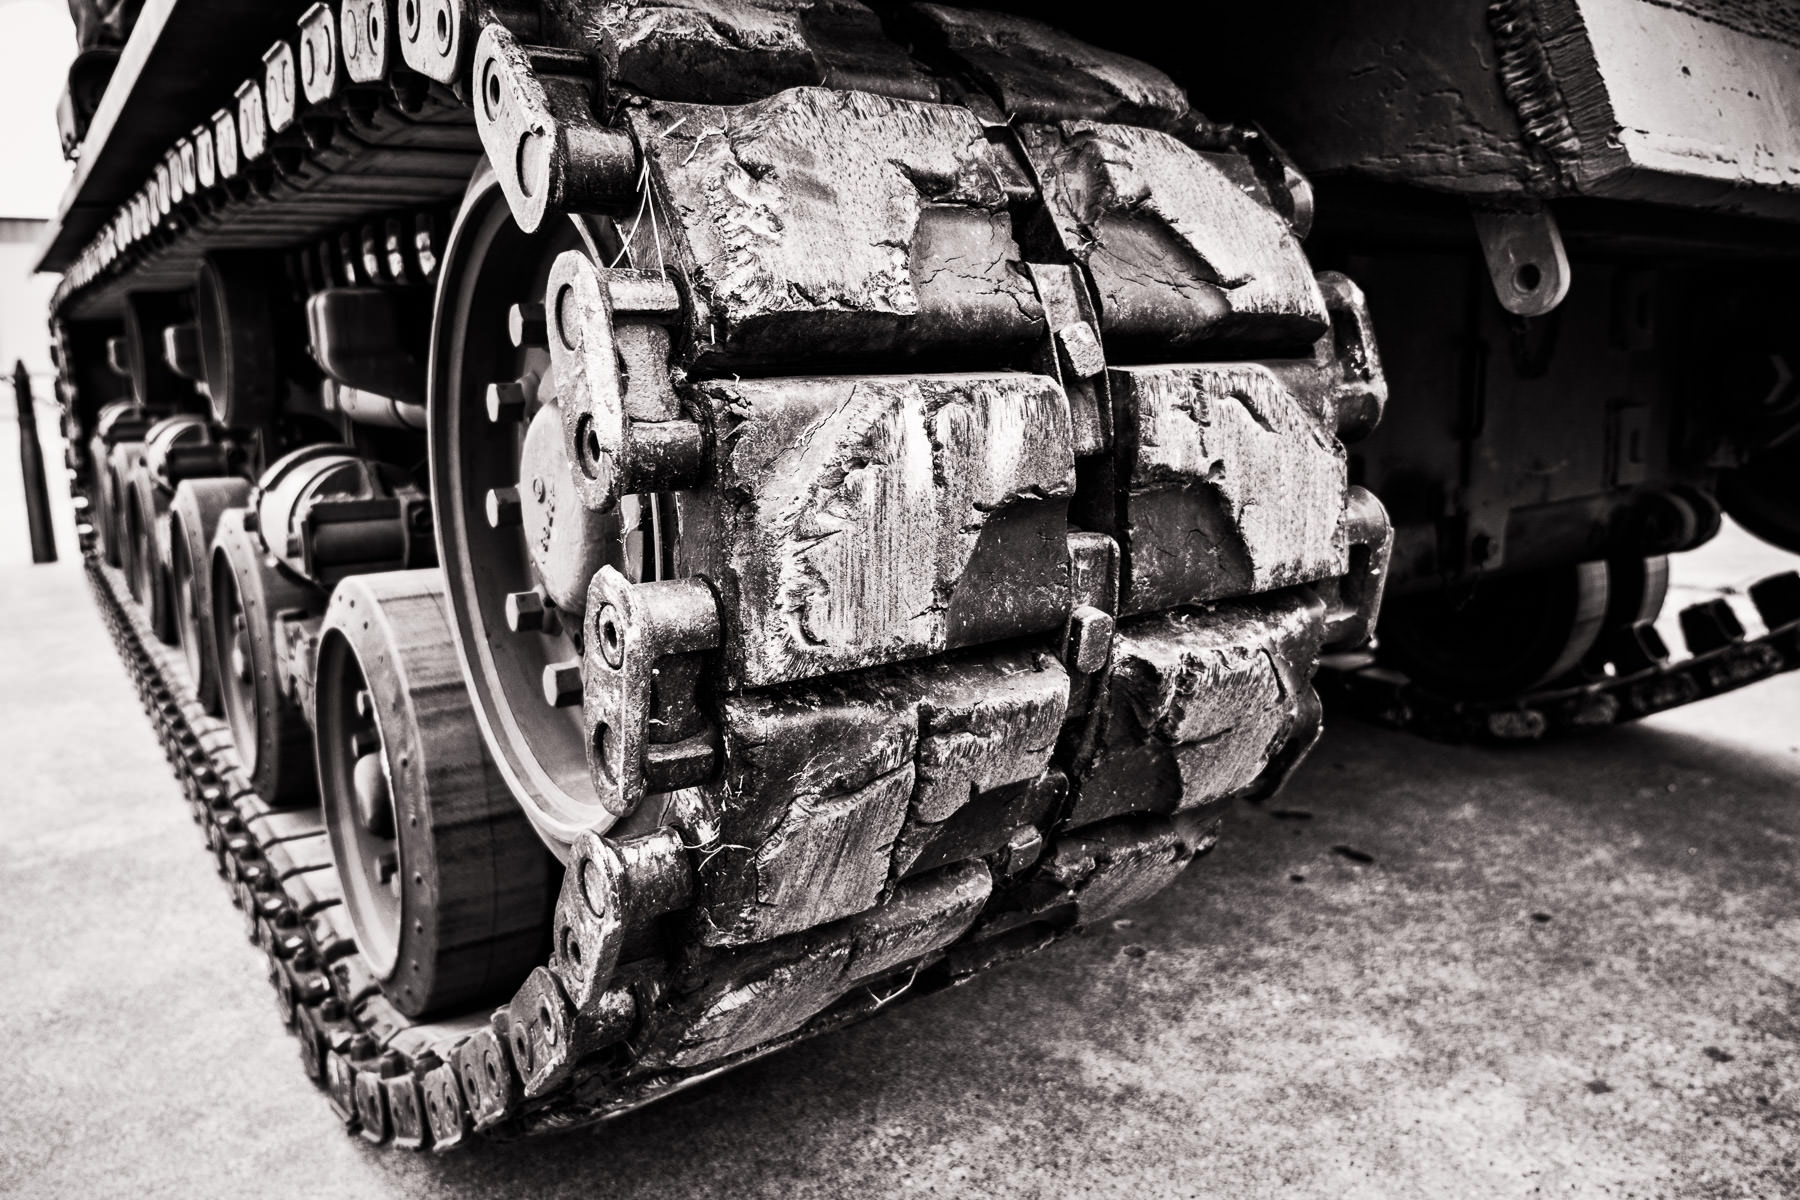 Detail of a M50 Super Sherman tank's tracks at the Cavanaugh Flight Museum, Addison, Texas.